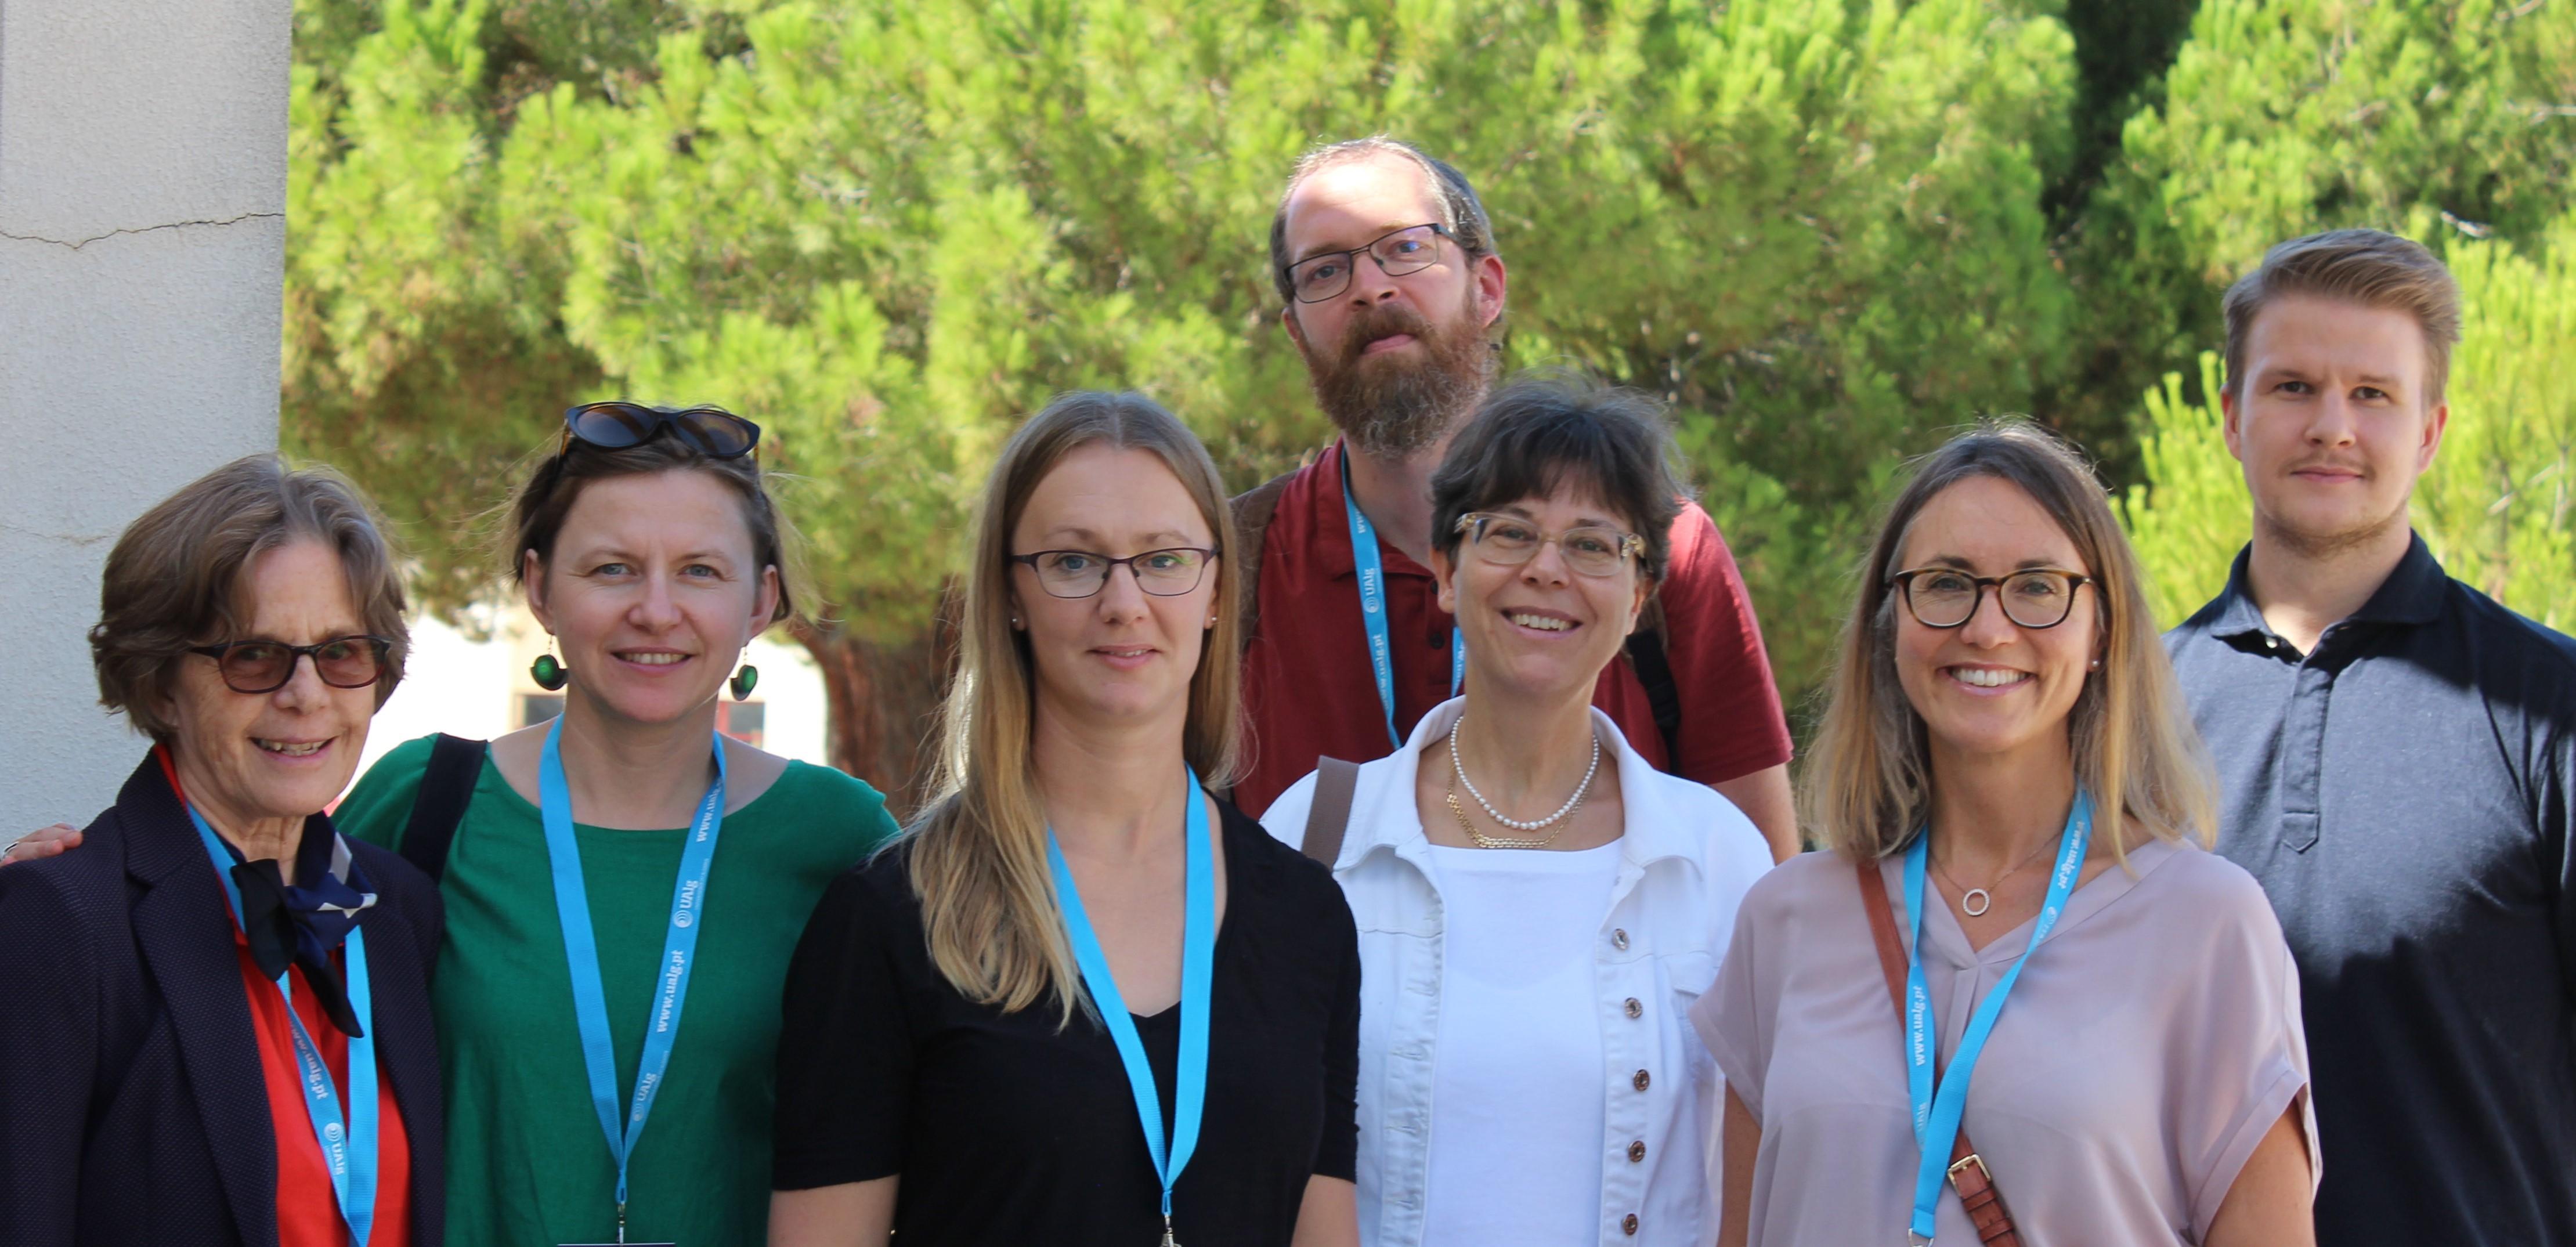 Happy Swedish conference participants (from left): Ann-Kristin Boström, Malgosia Malec Rawinski (Stockholm University), Sara Bref, Joel Hedegaard, Helene Ahl, Cecilia Bjursell and Magnus Schoultz (Örebro University).